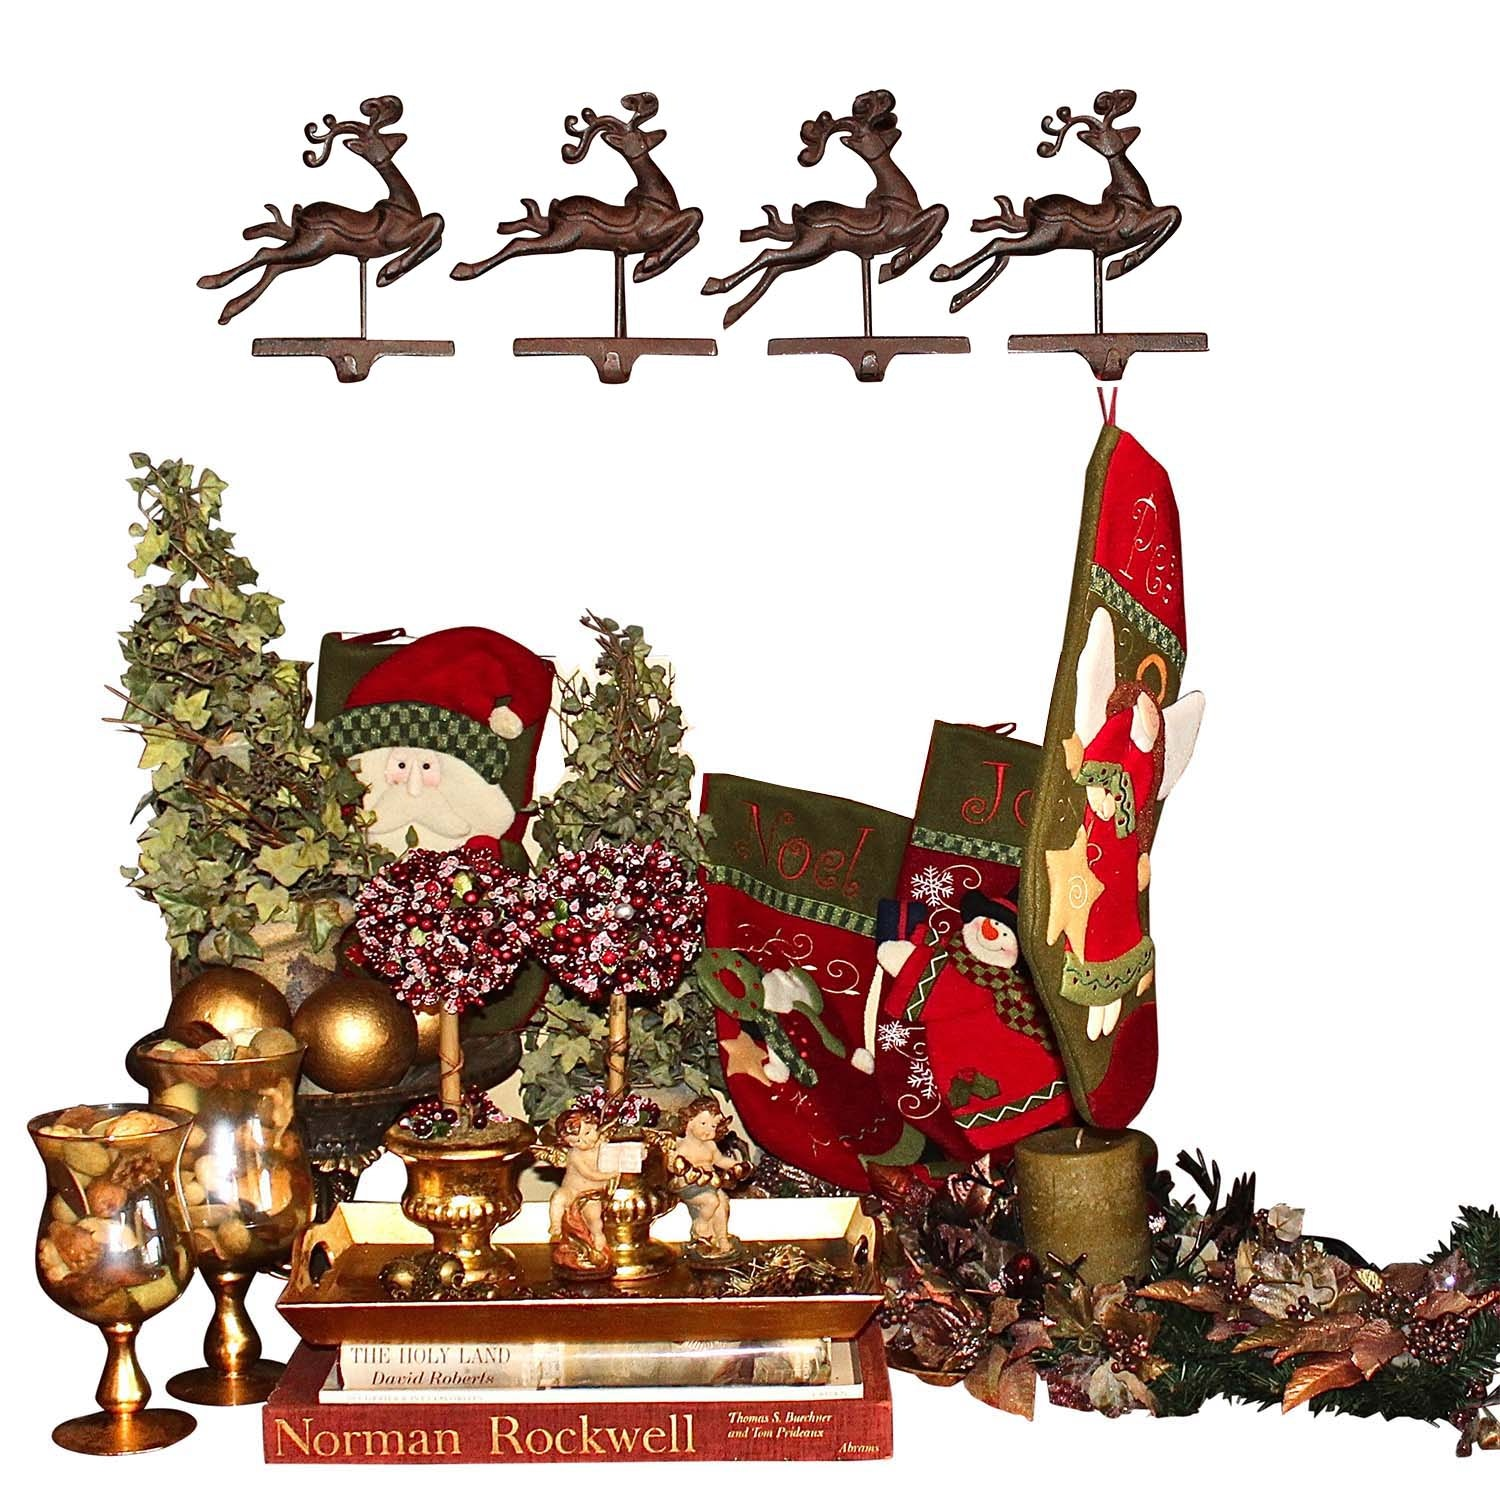 Large Assortment of Christmas Decor Including a Normal Rockwell Book